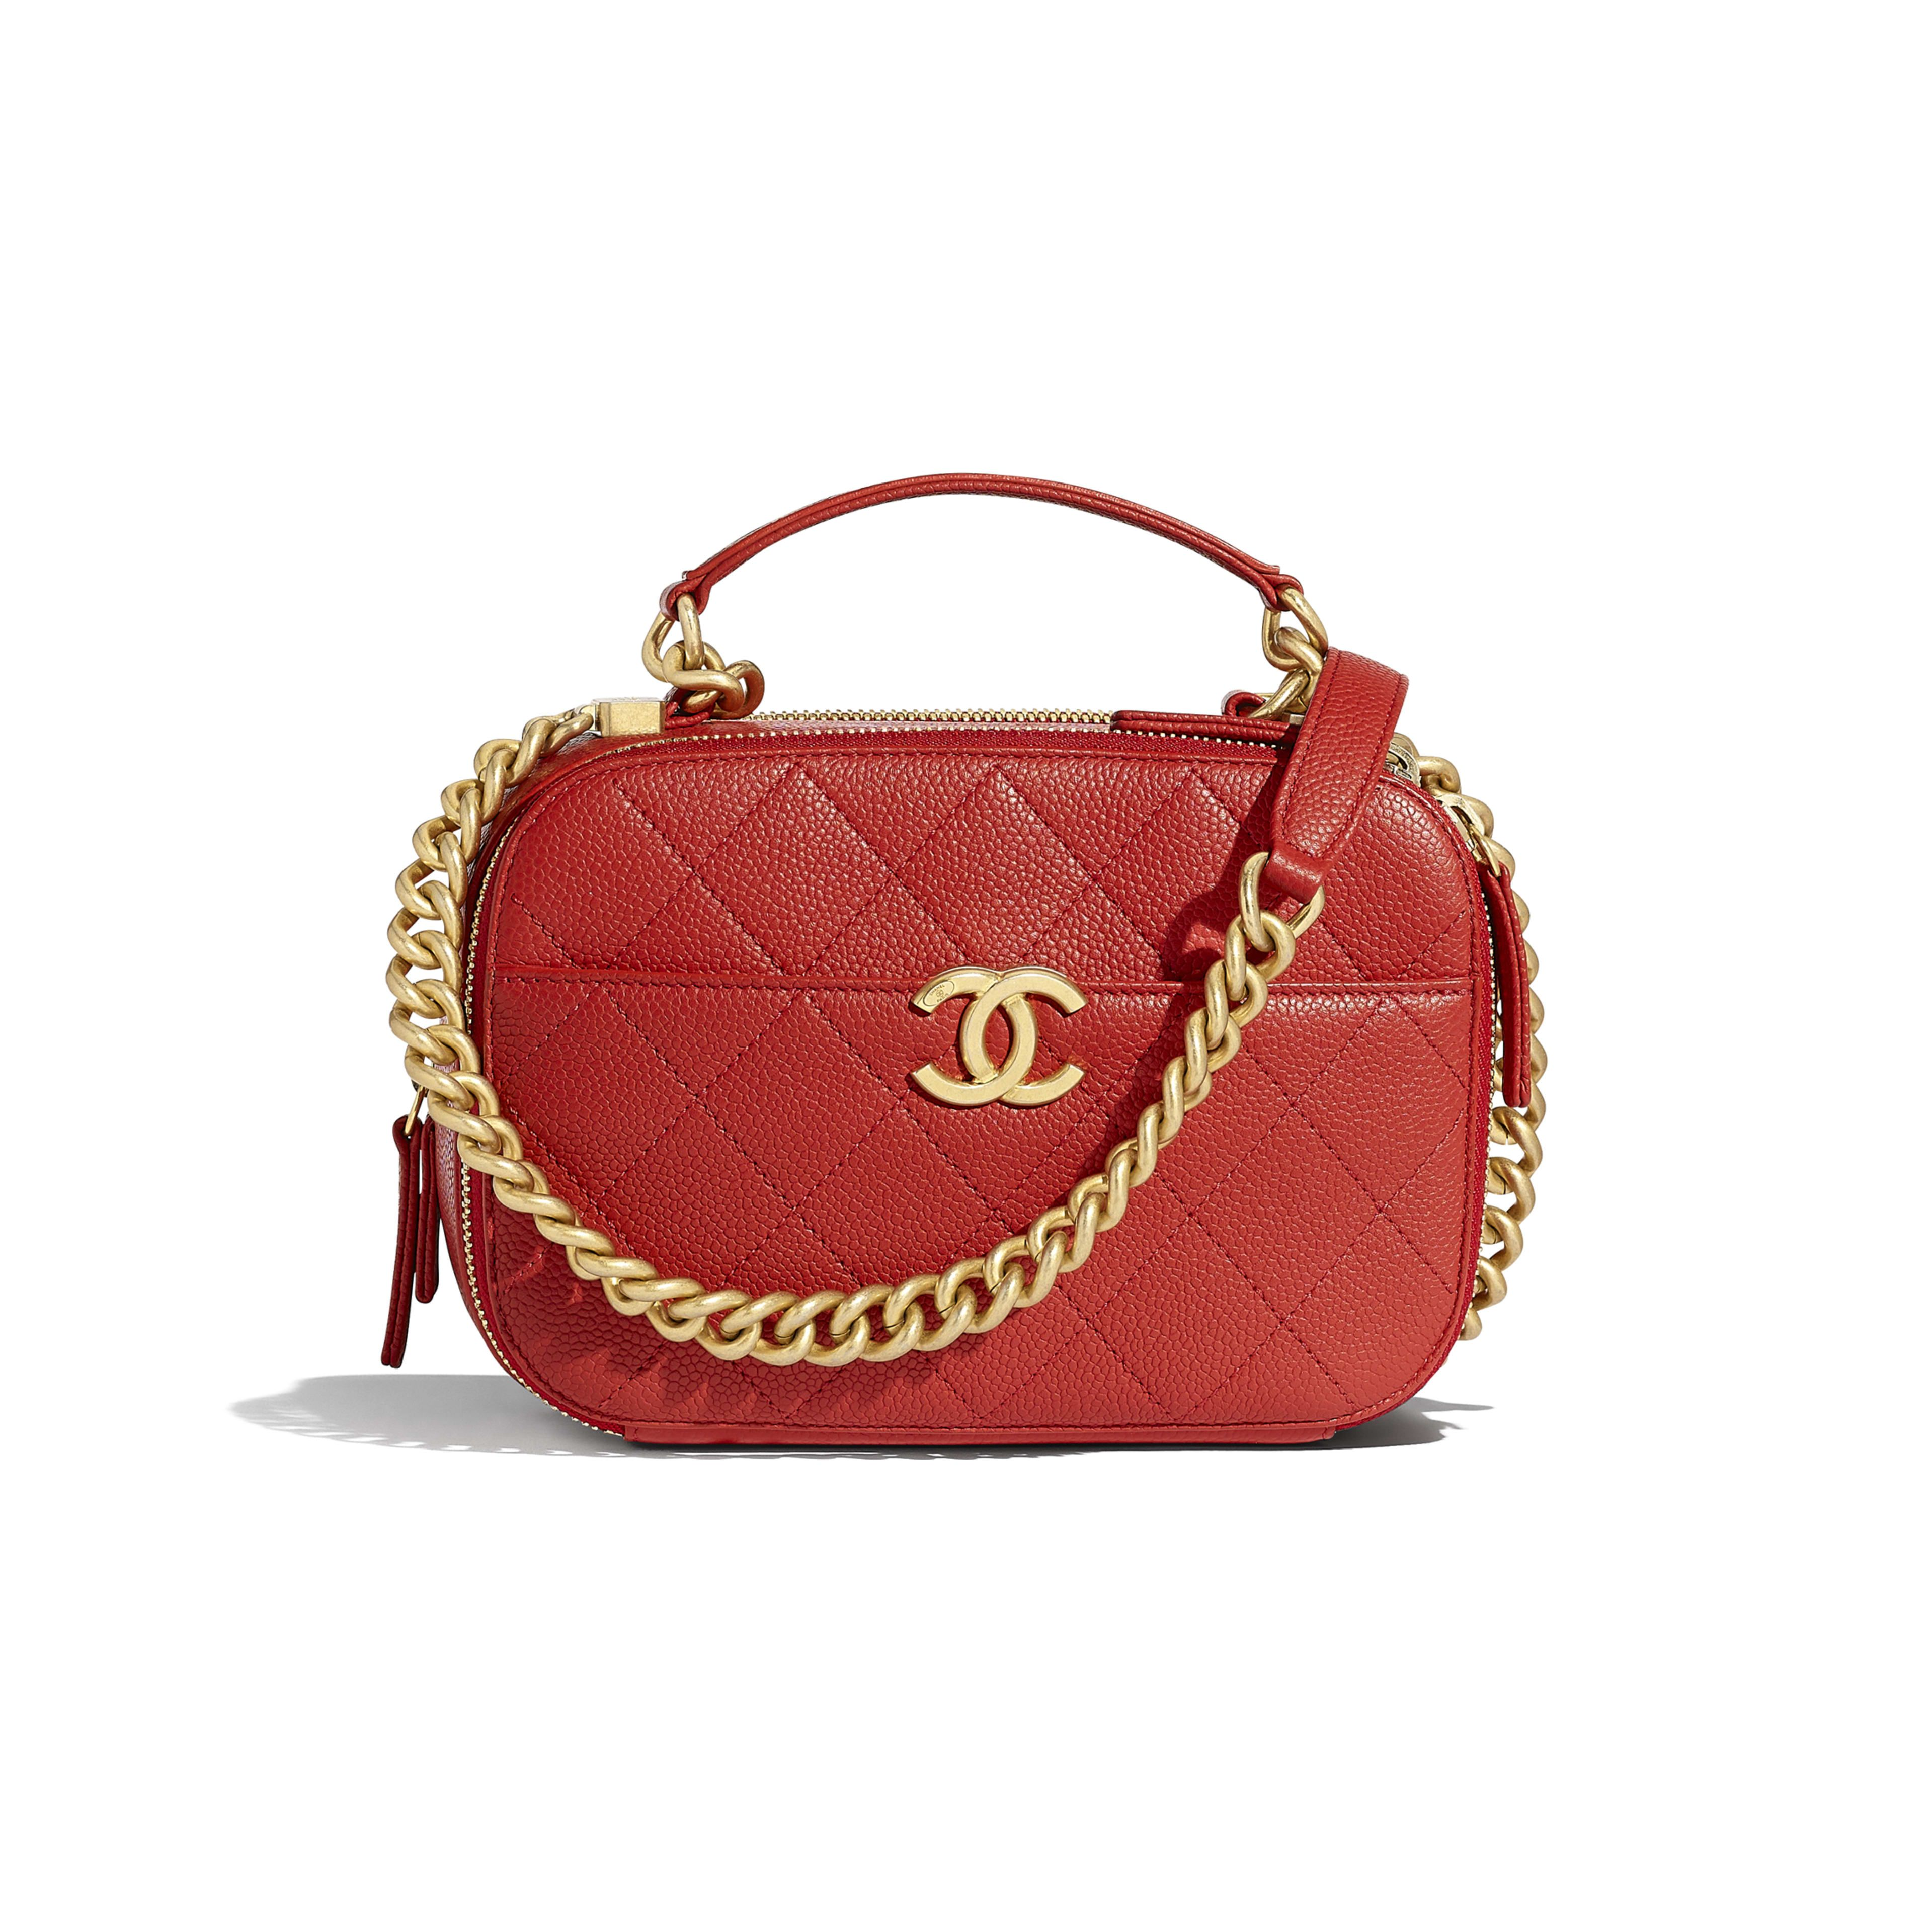 d191e5f70d85 Camera Case - Red - Grained Calfskin   Gold-Tone Metal - Default view - see  full sized version